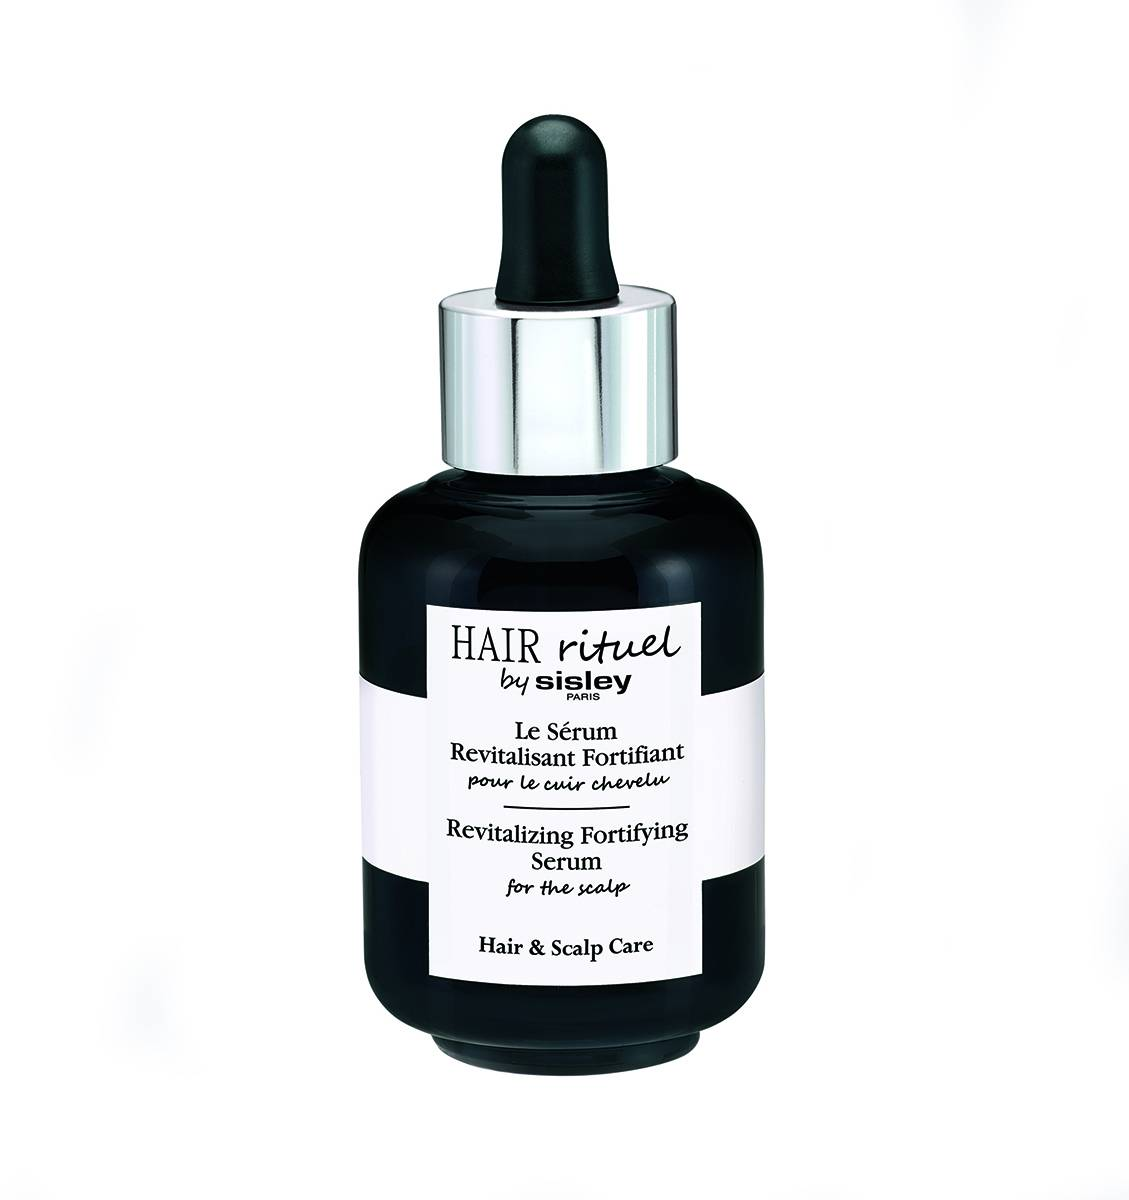 Revitilizing fortifying serum, Hair ritual by Sisley, 680 pln